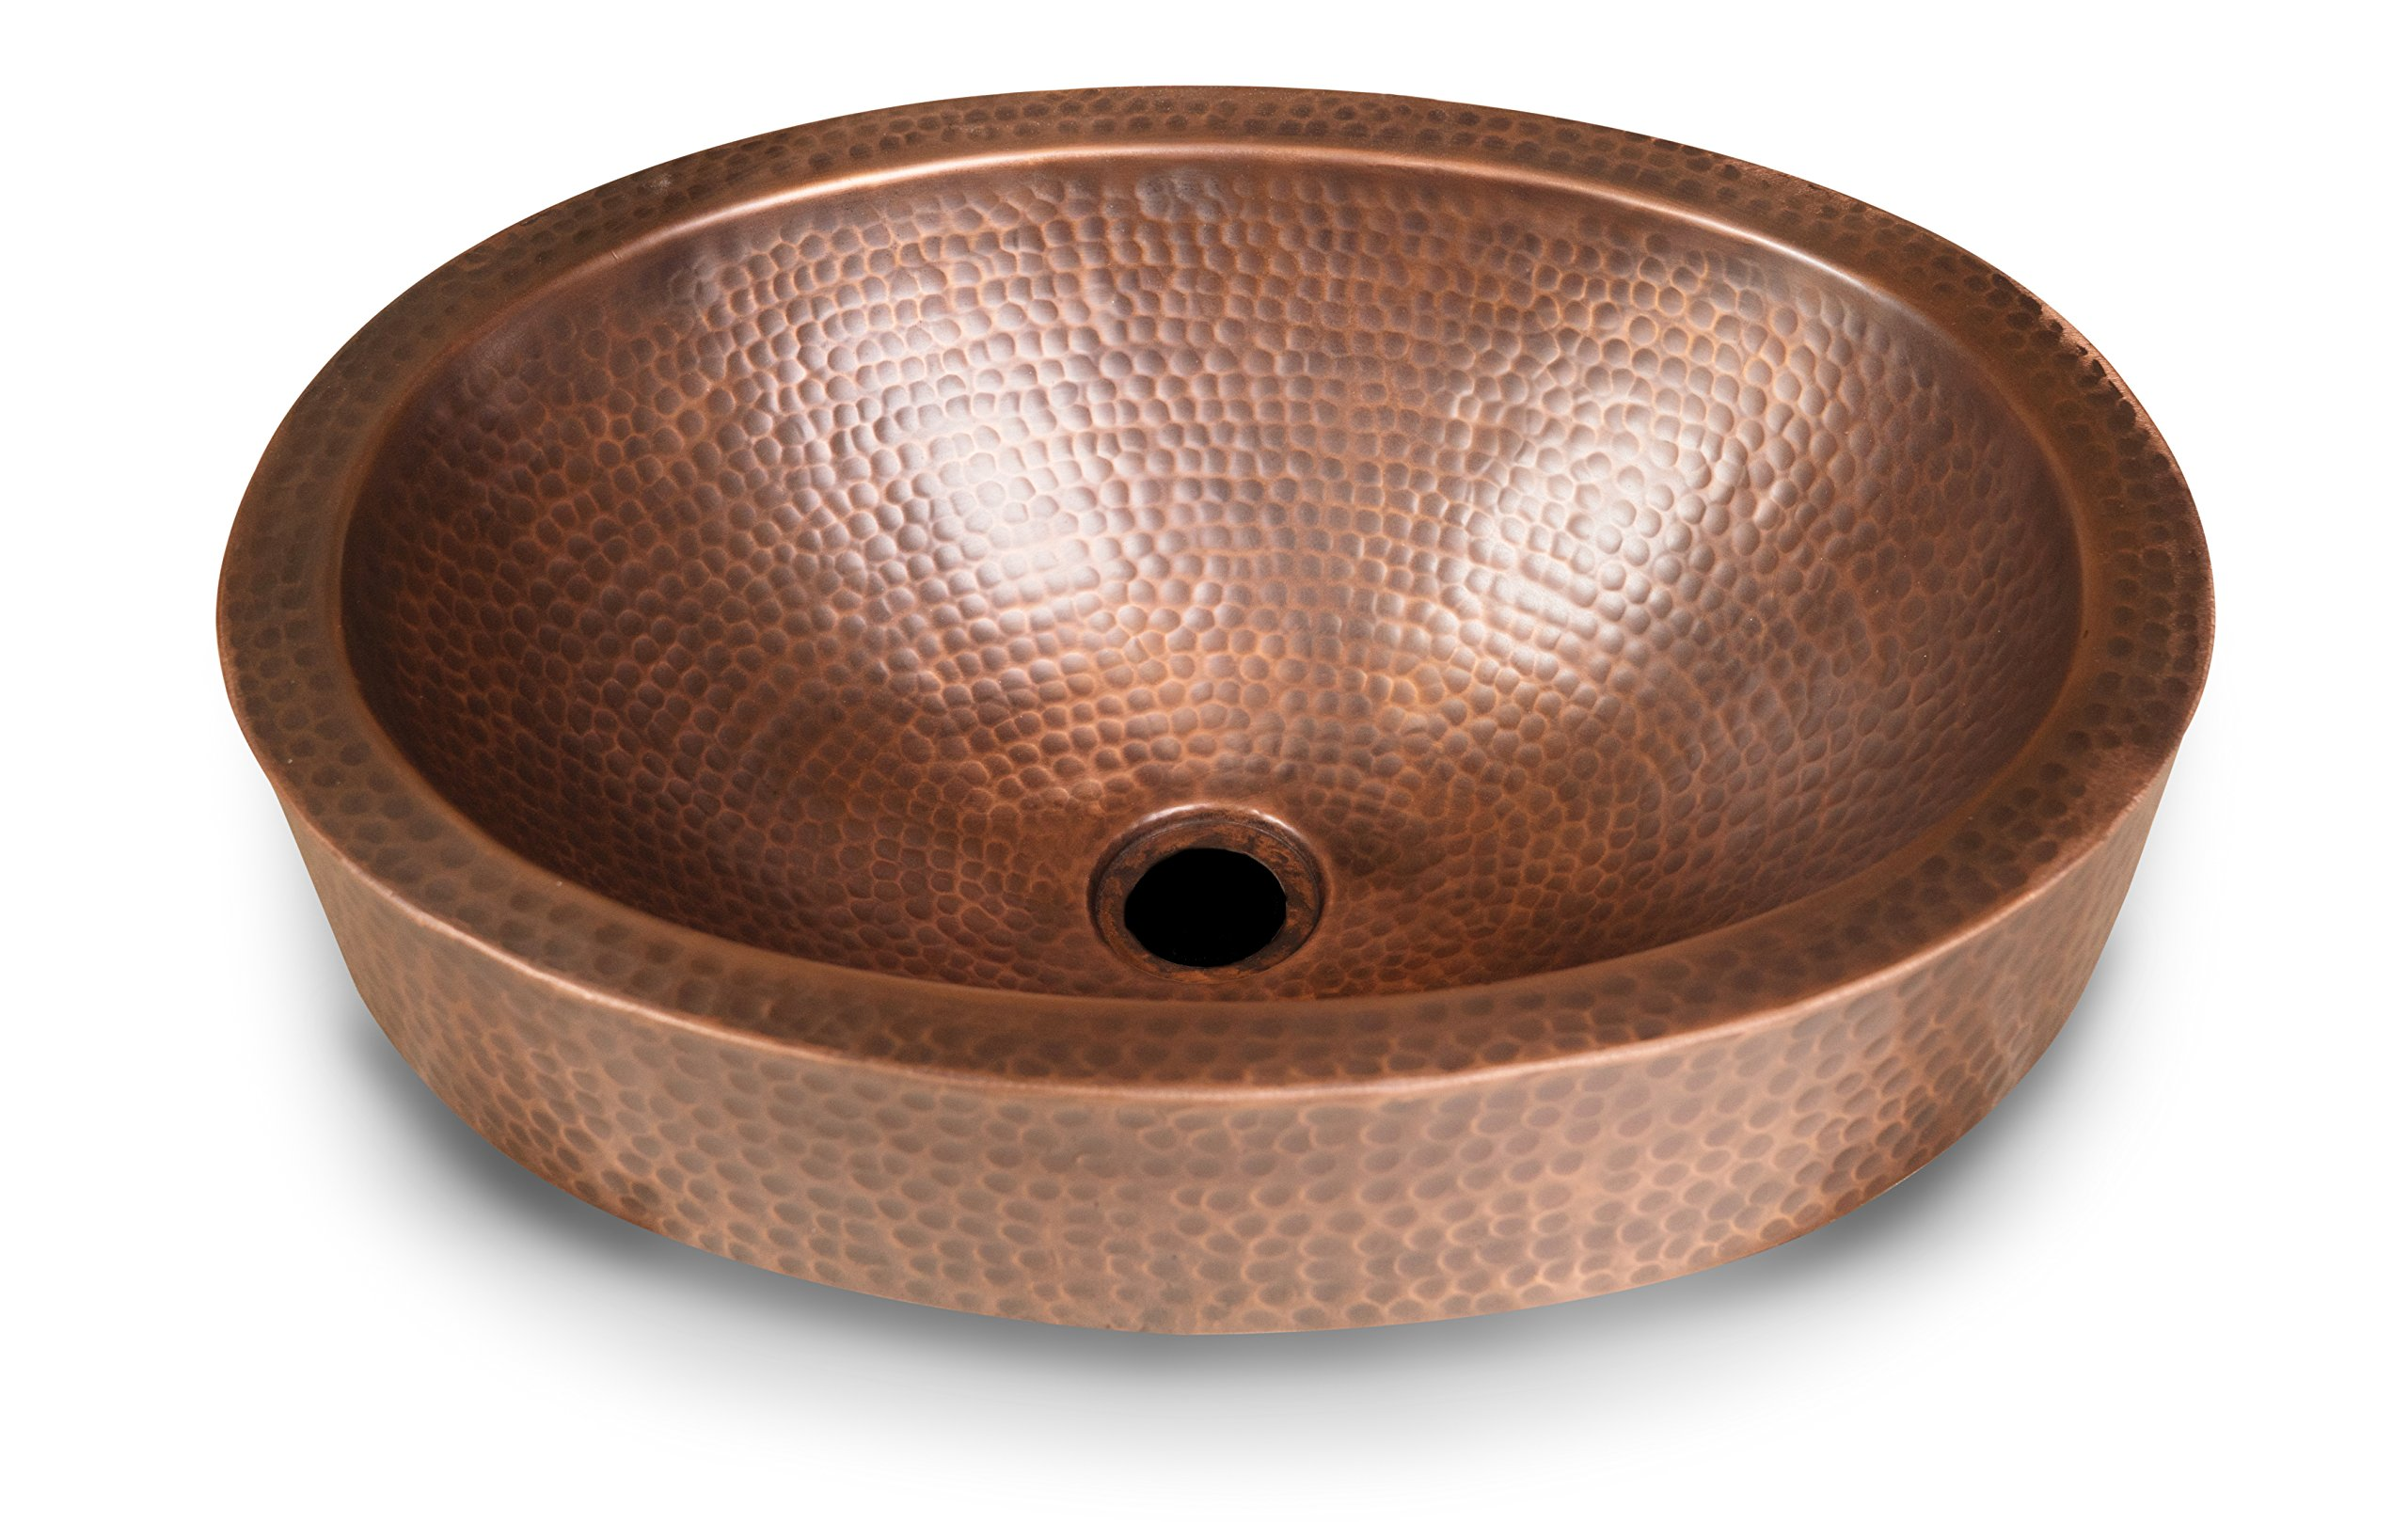 Monarch Pure Copper Hand Hammered Skirted Sink, 17 inches (Drop In or Vessel) by Monarch Abode